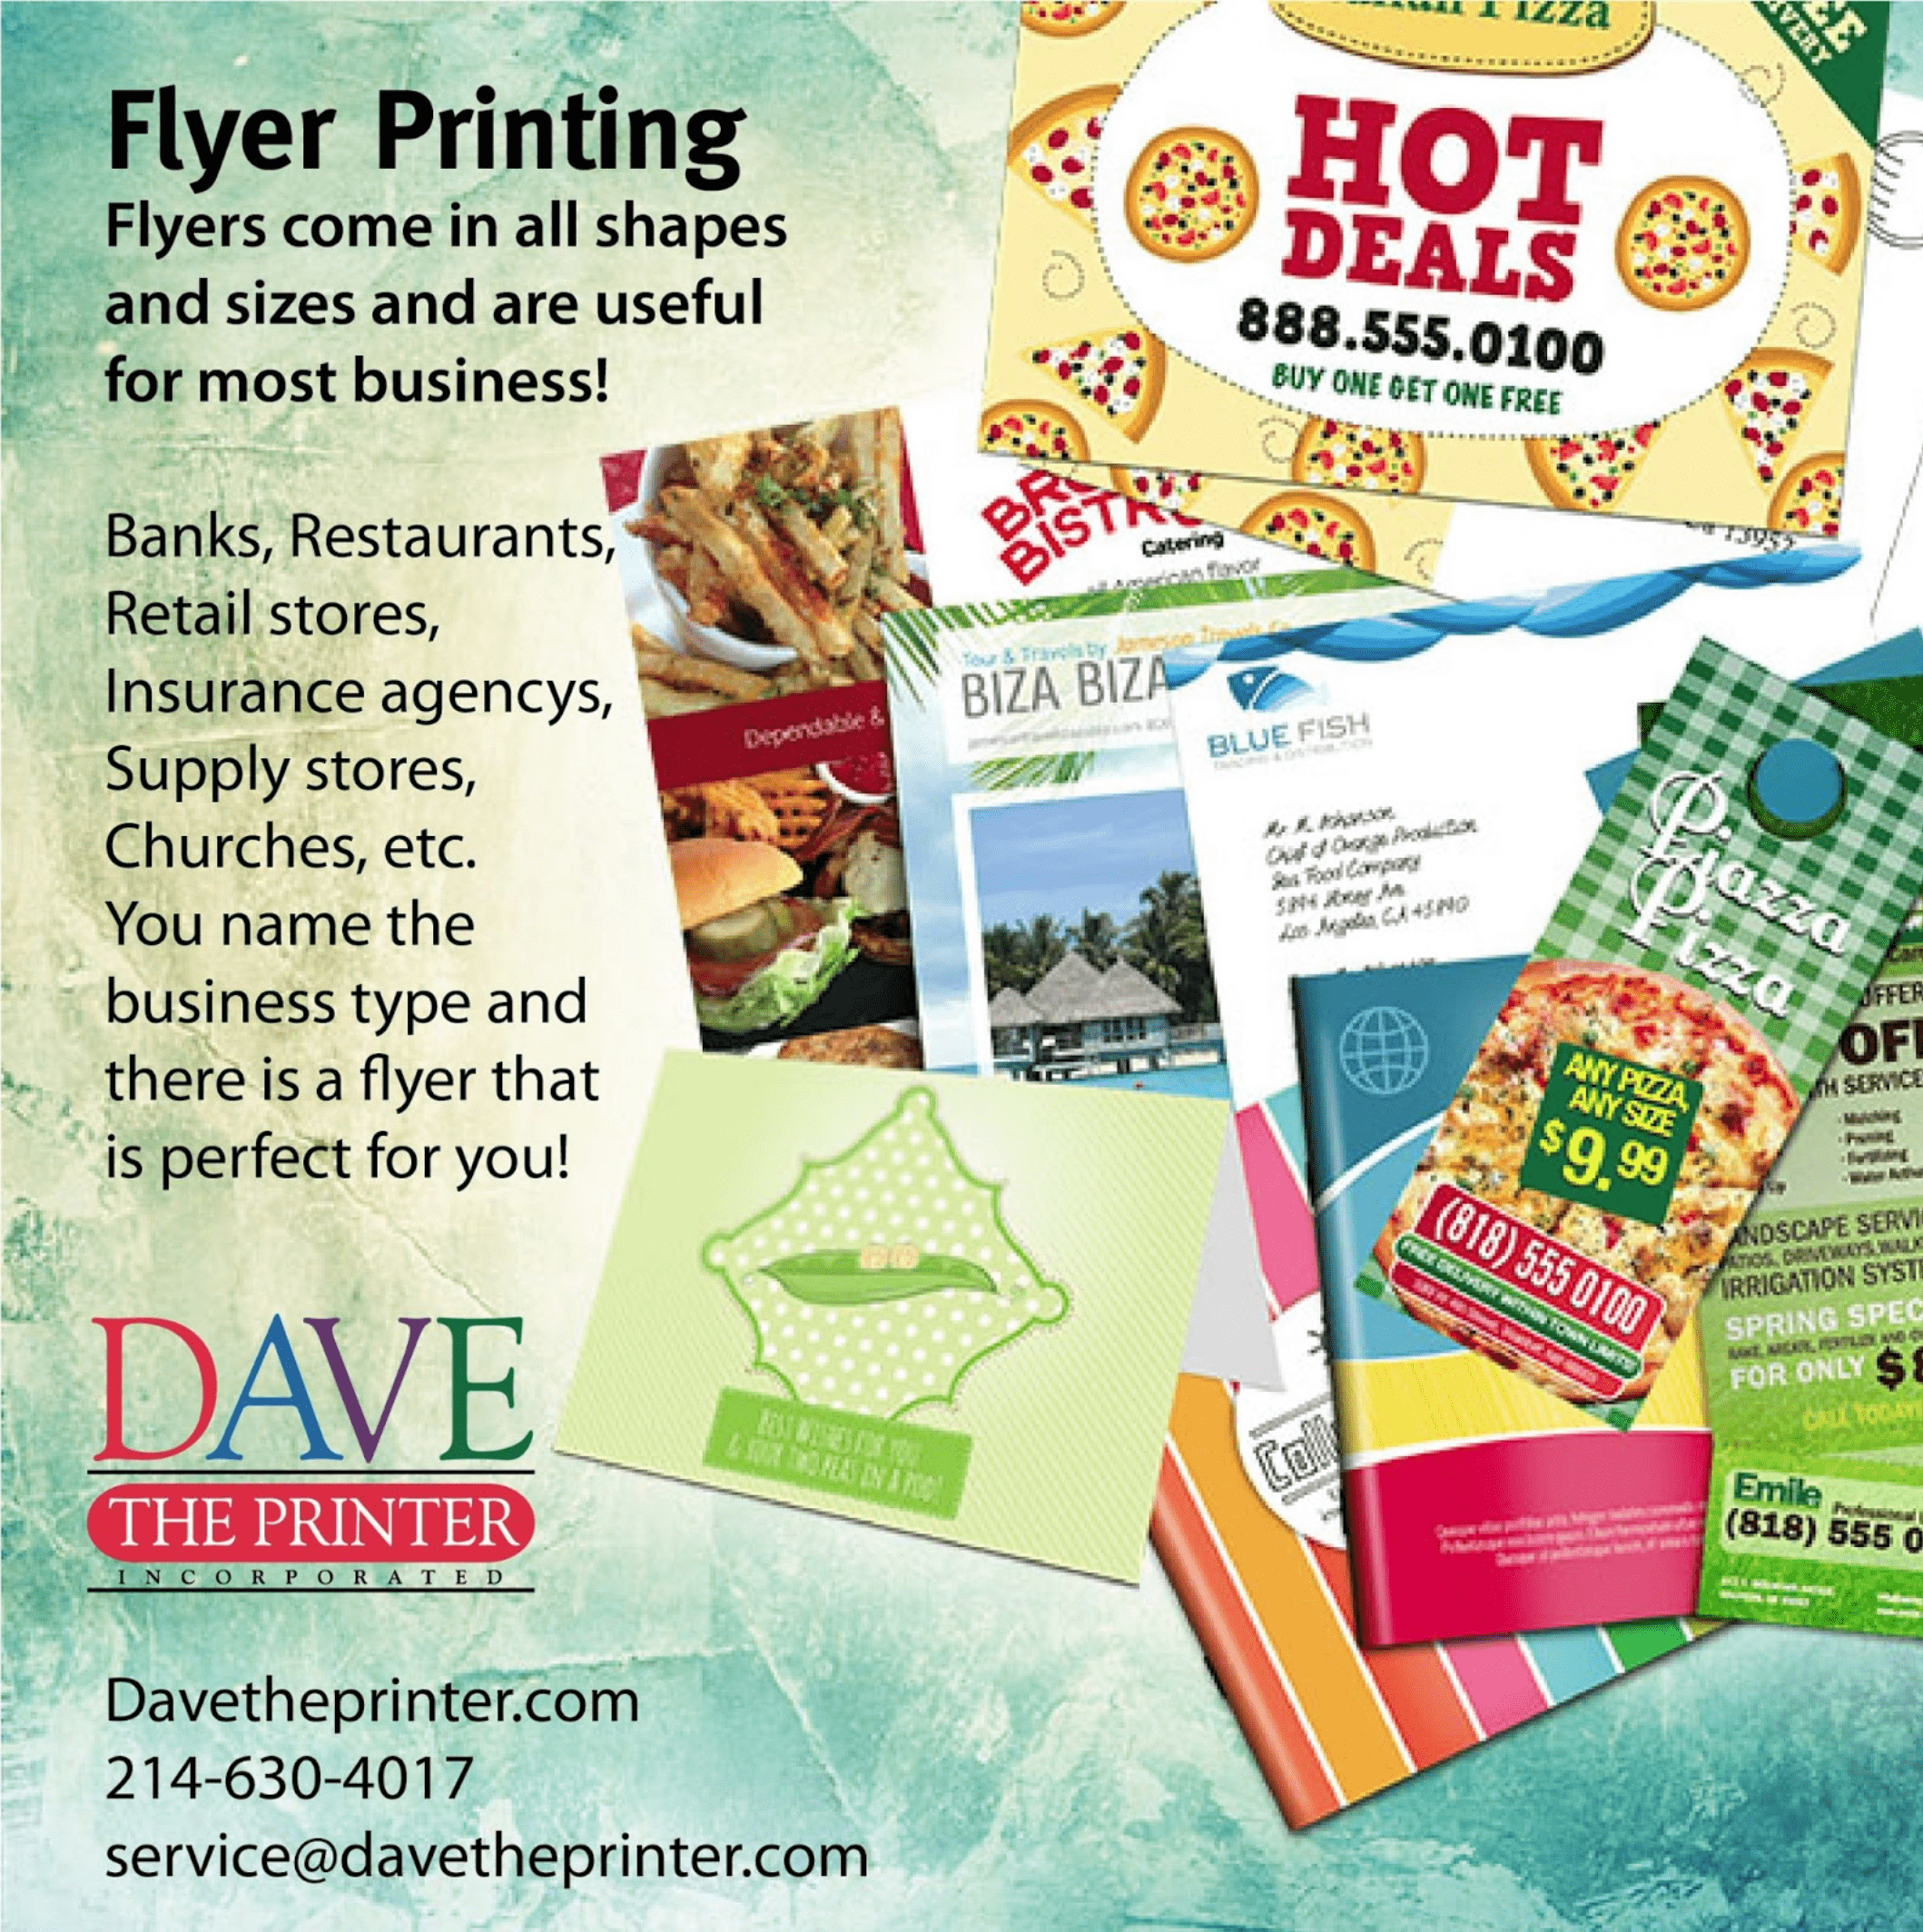 Get flyer printing that you can count on!